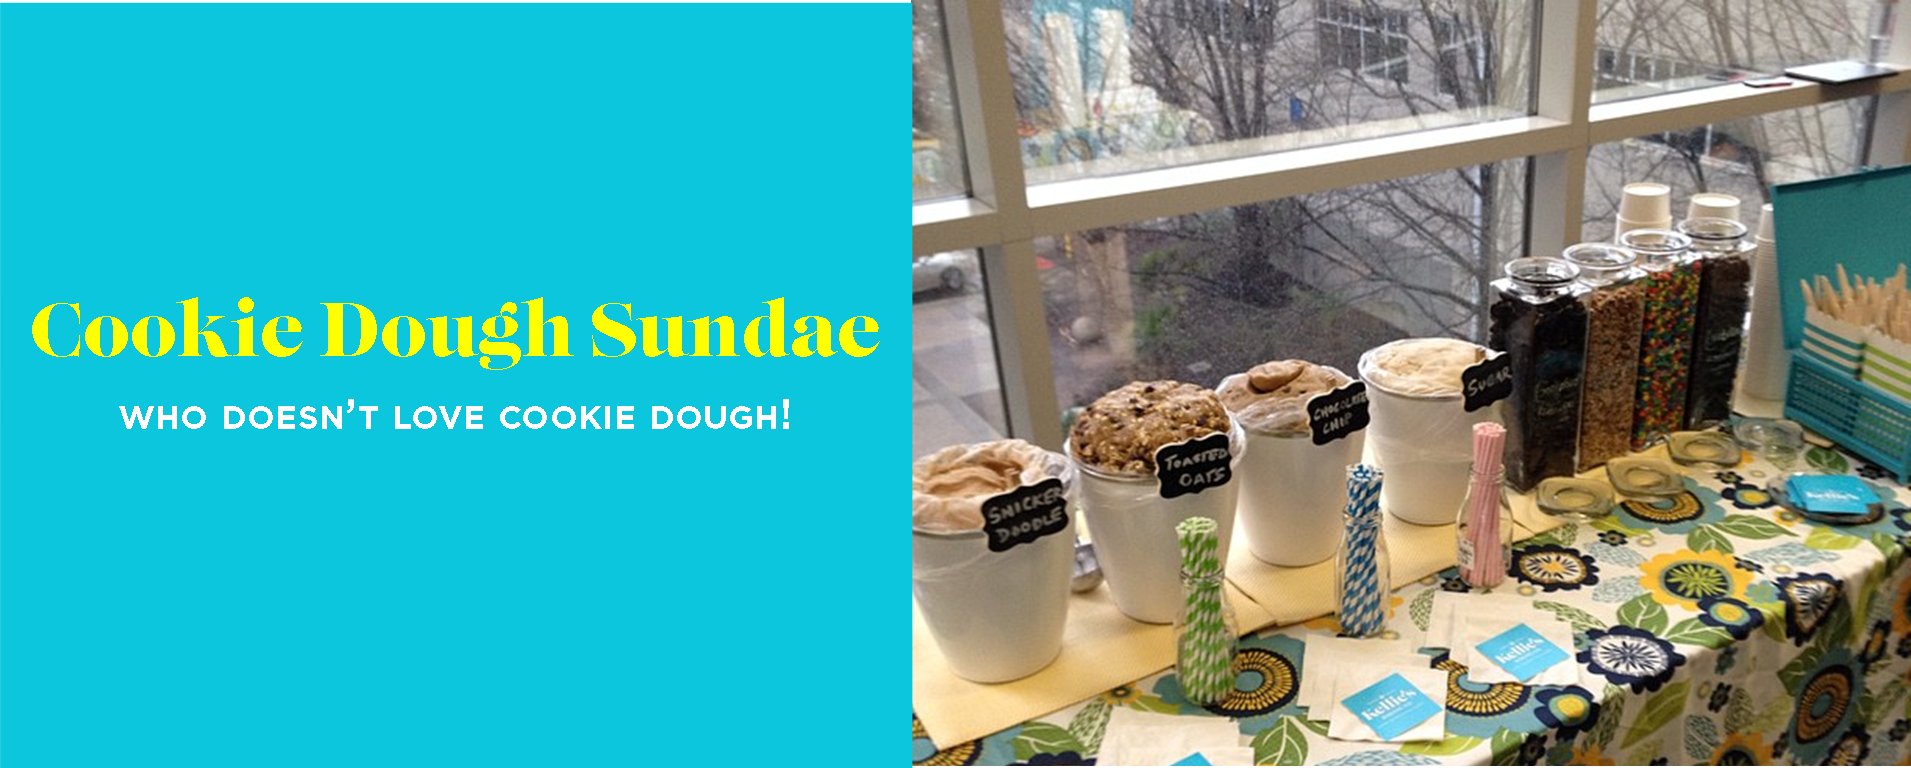 cookie-dough-sundae-page.png